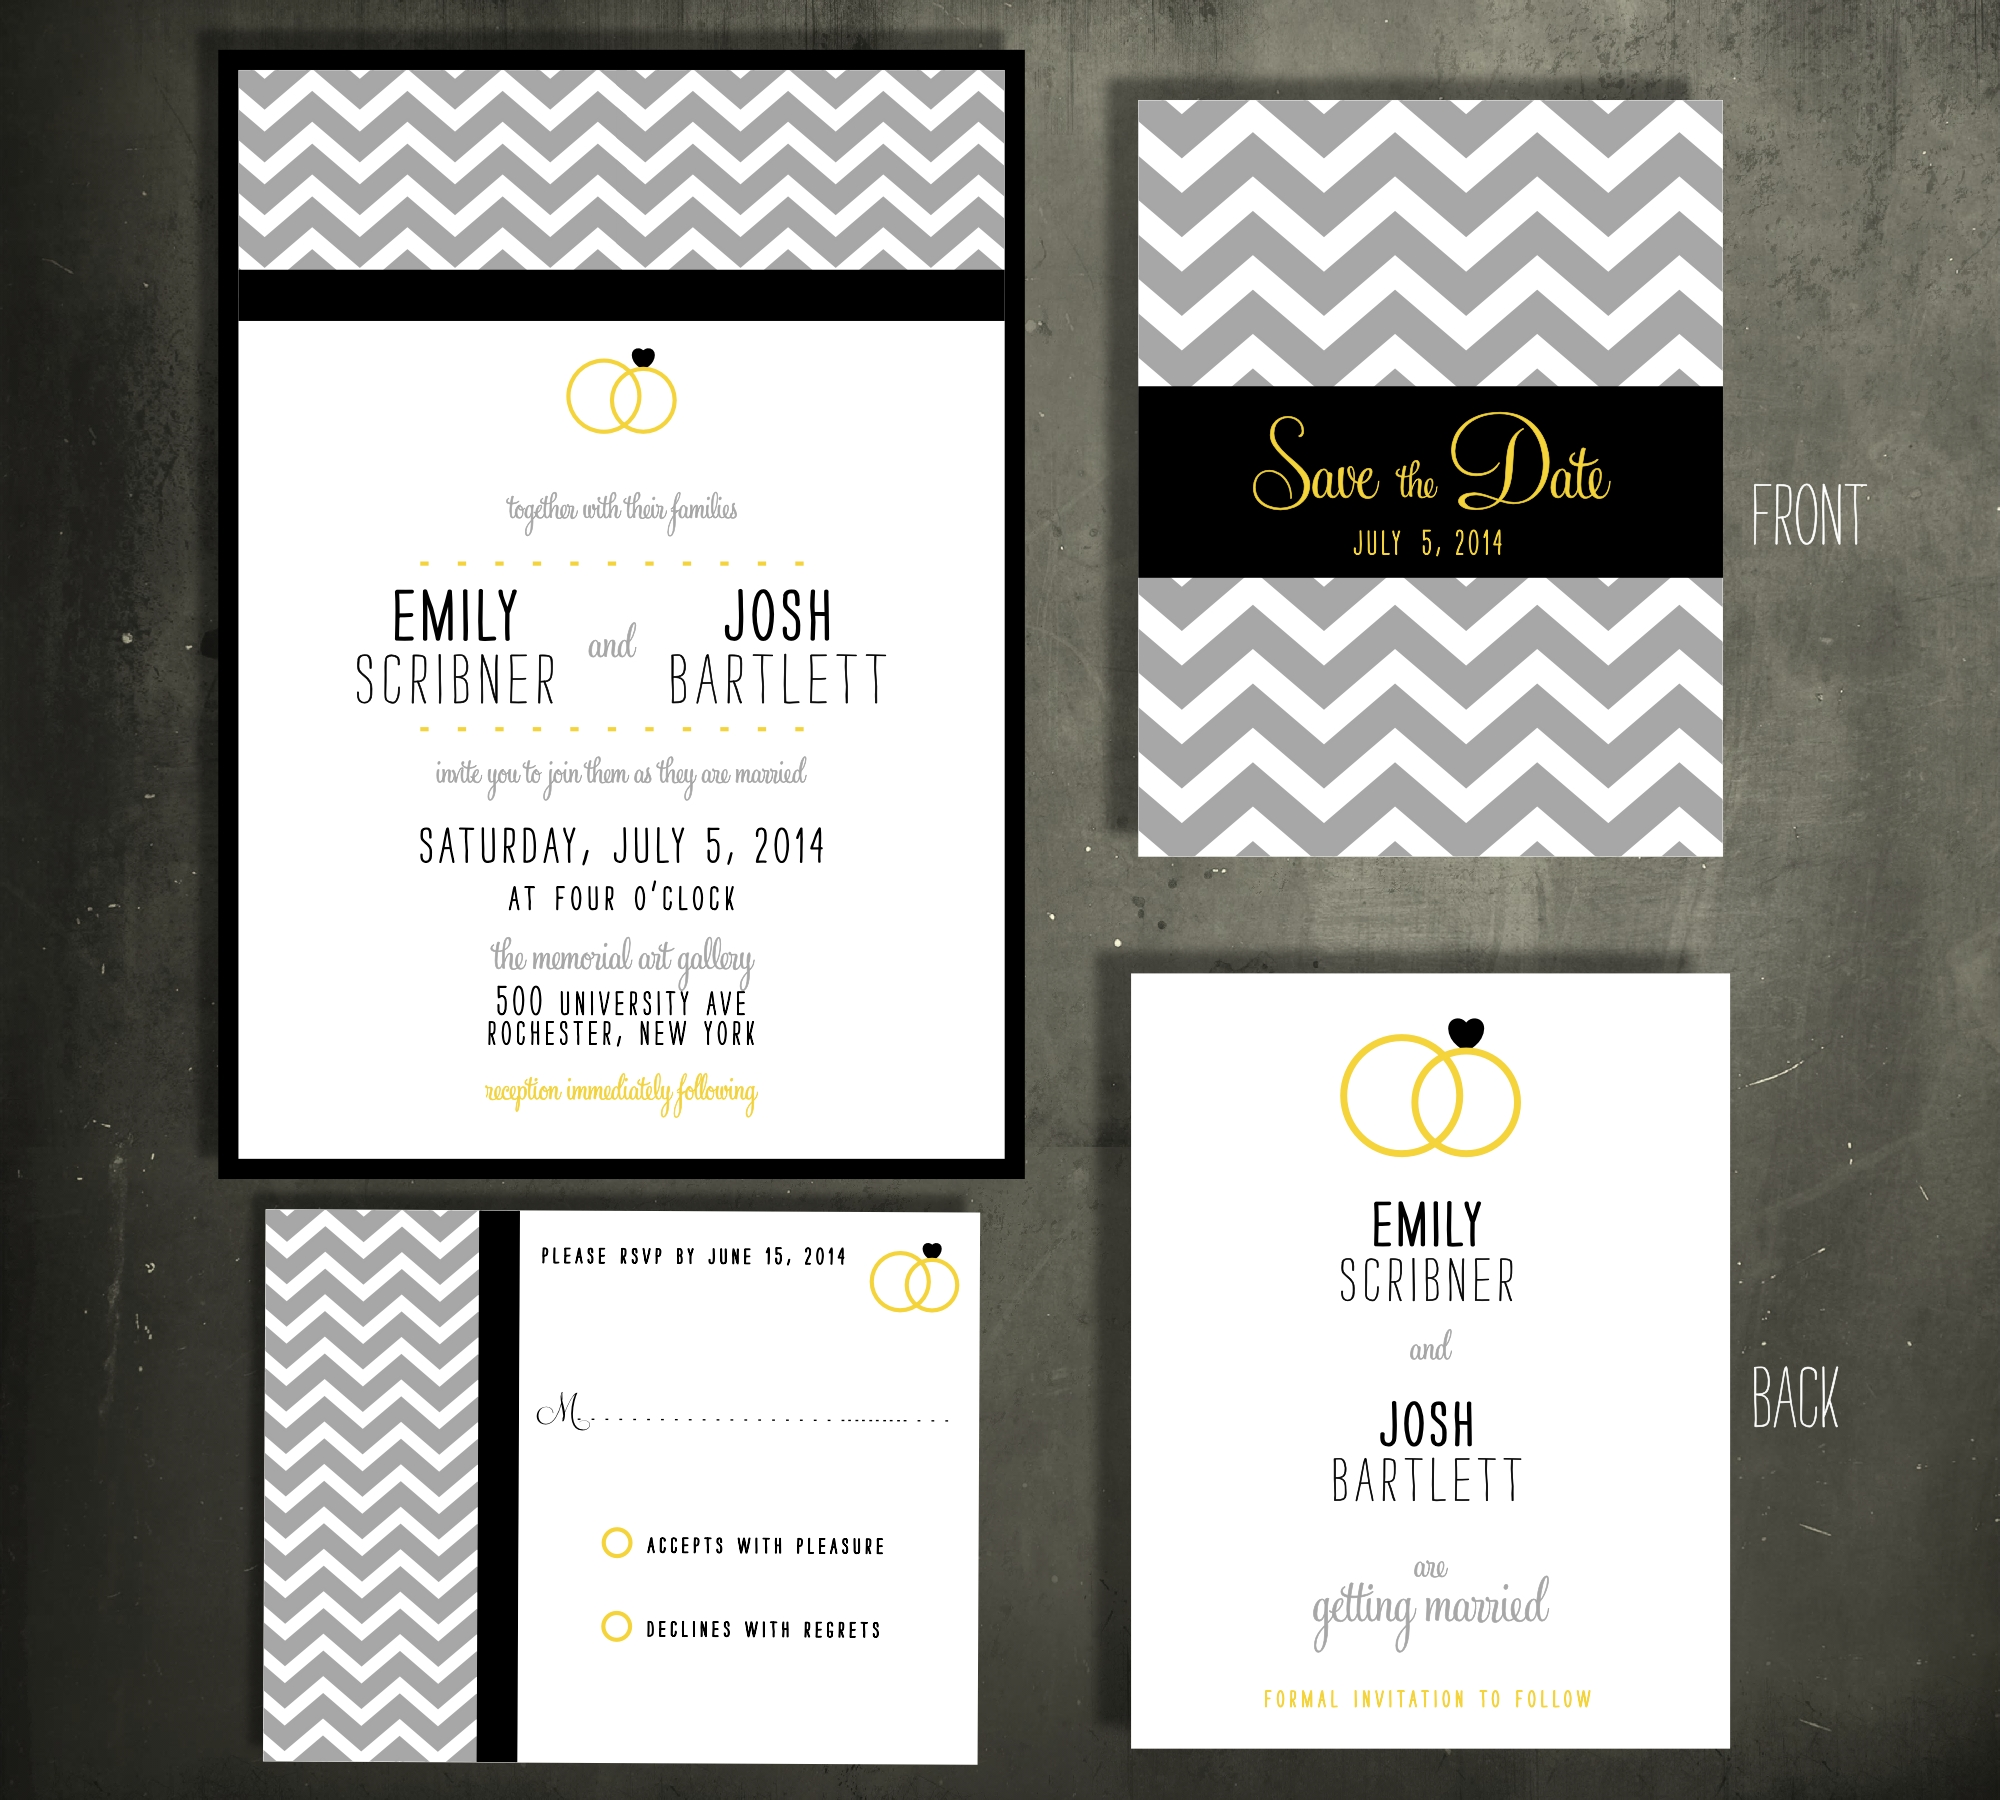 Chevron Rings Invitation